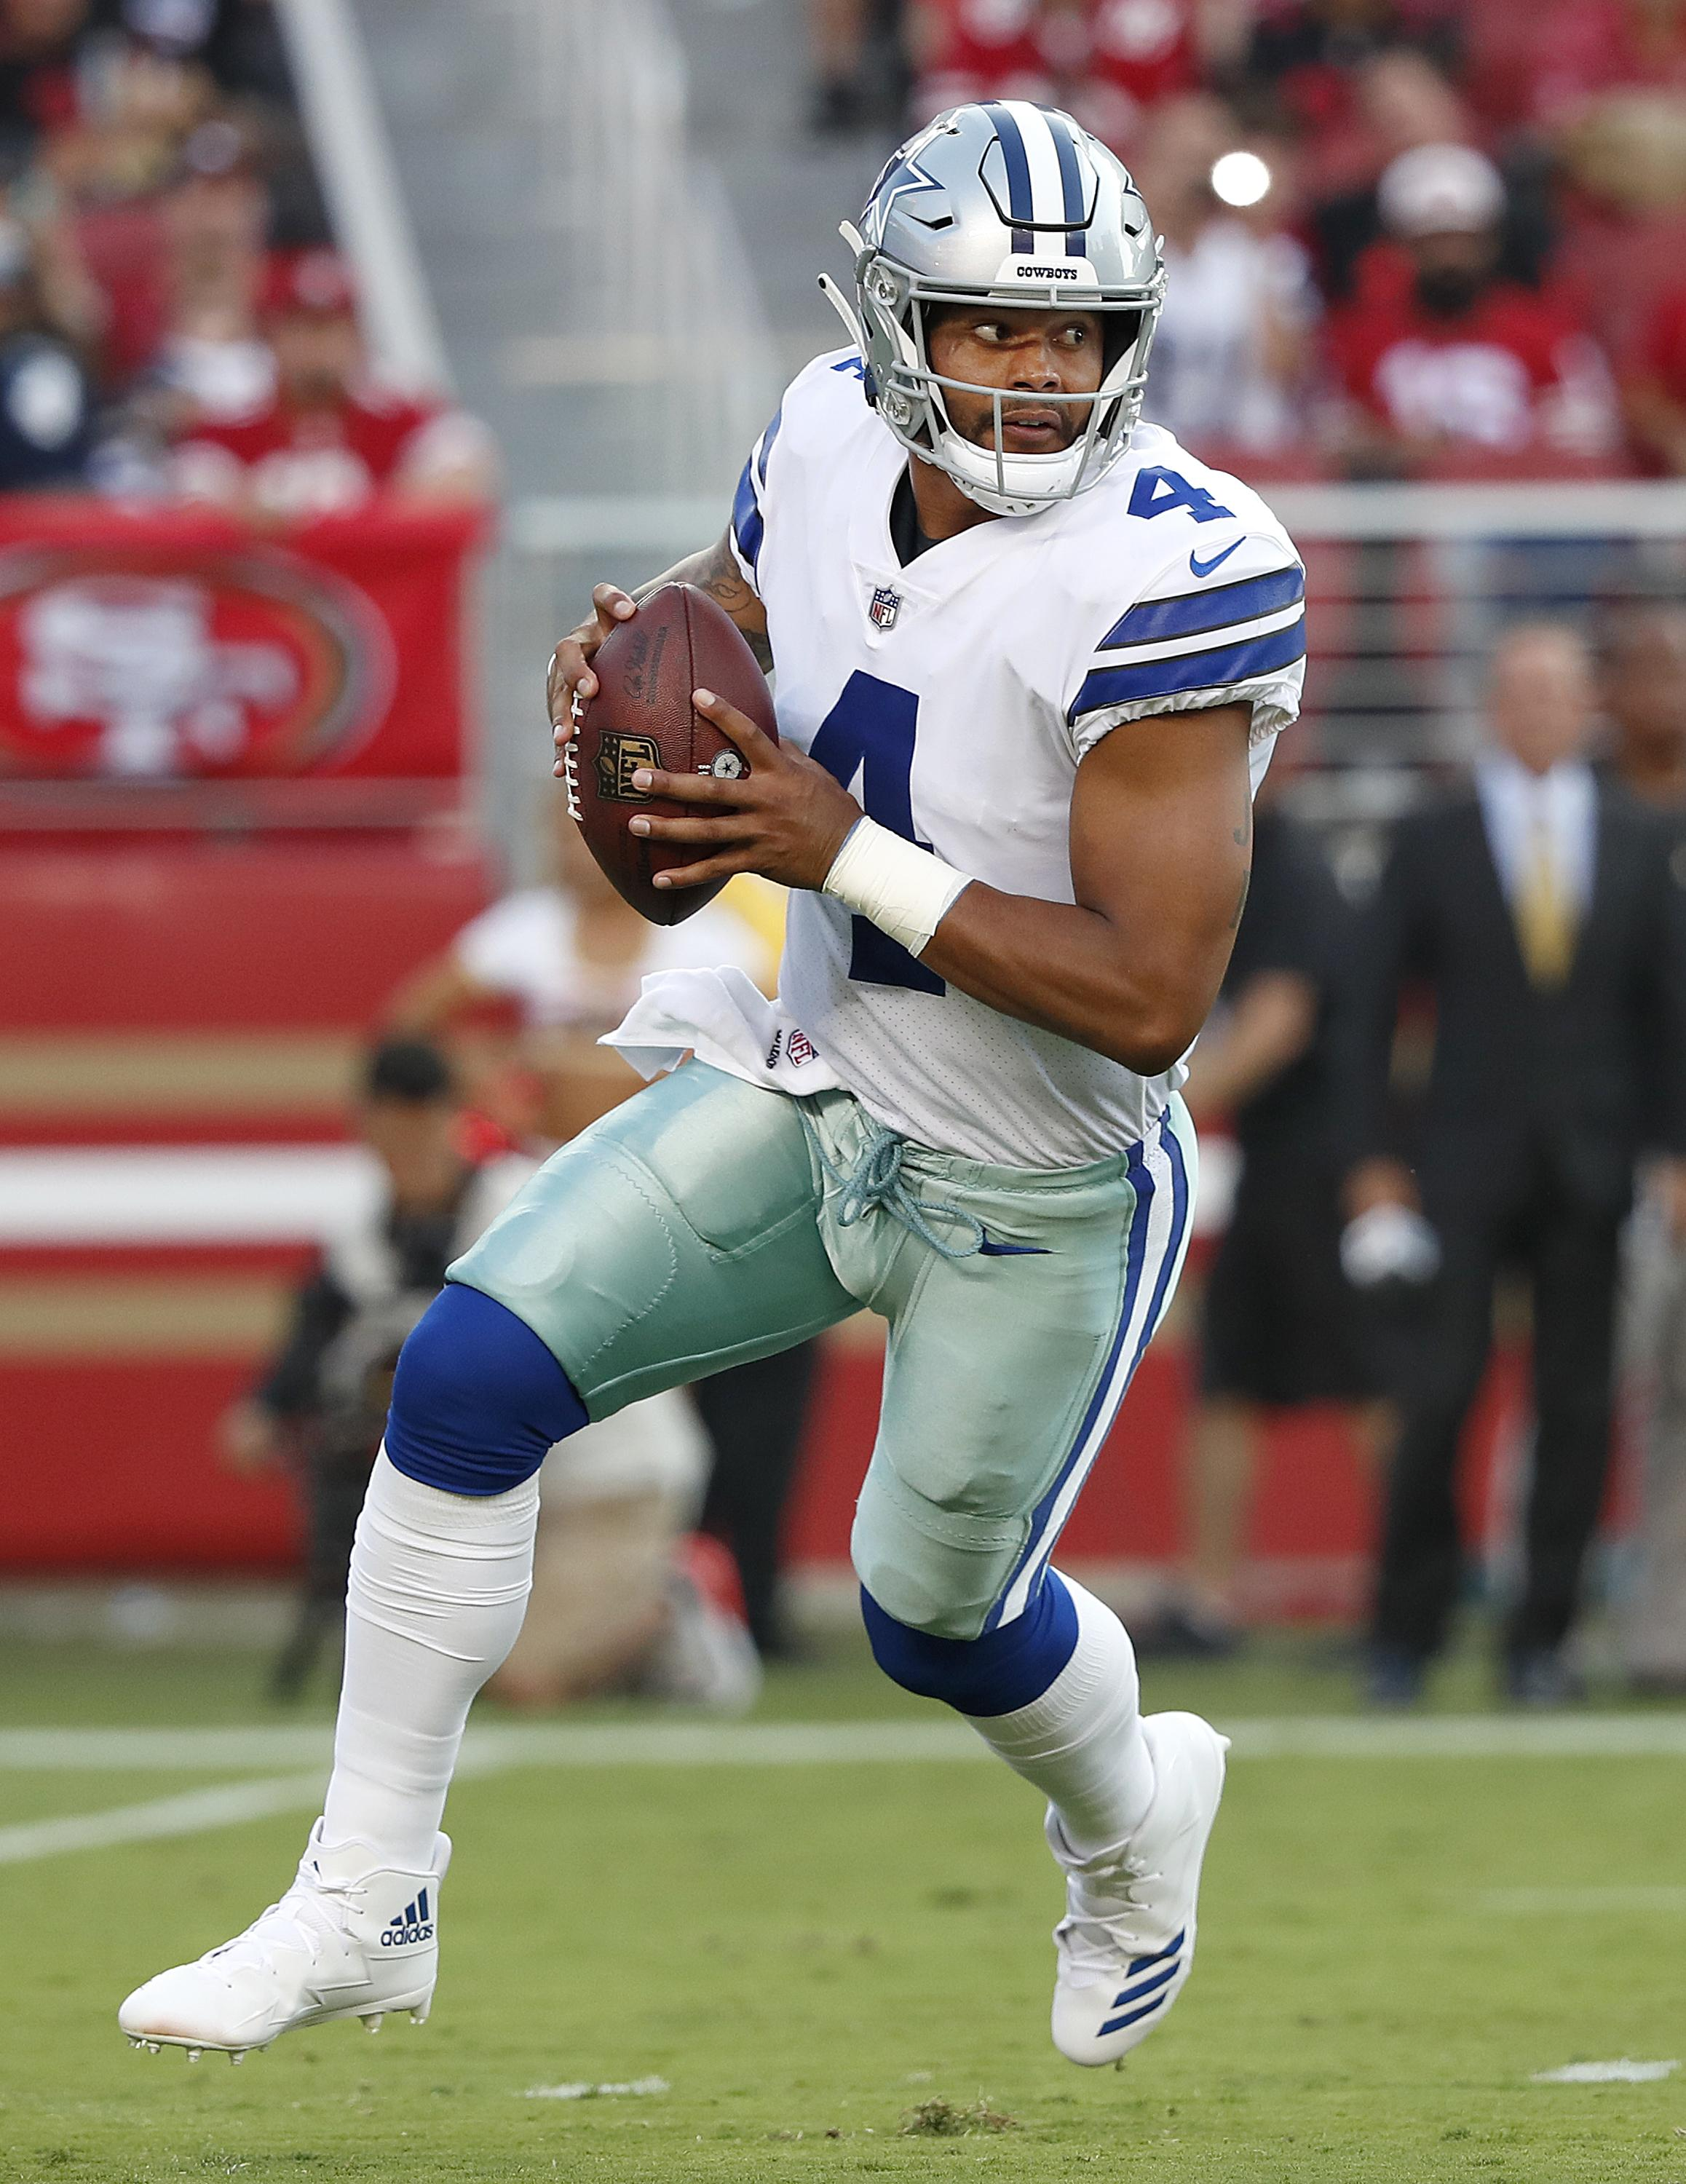 Prescott was Rookie of the Year in 2016